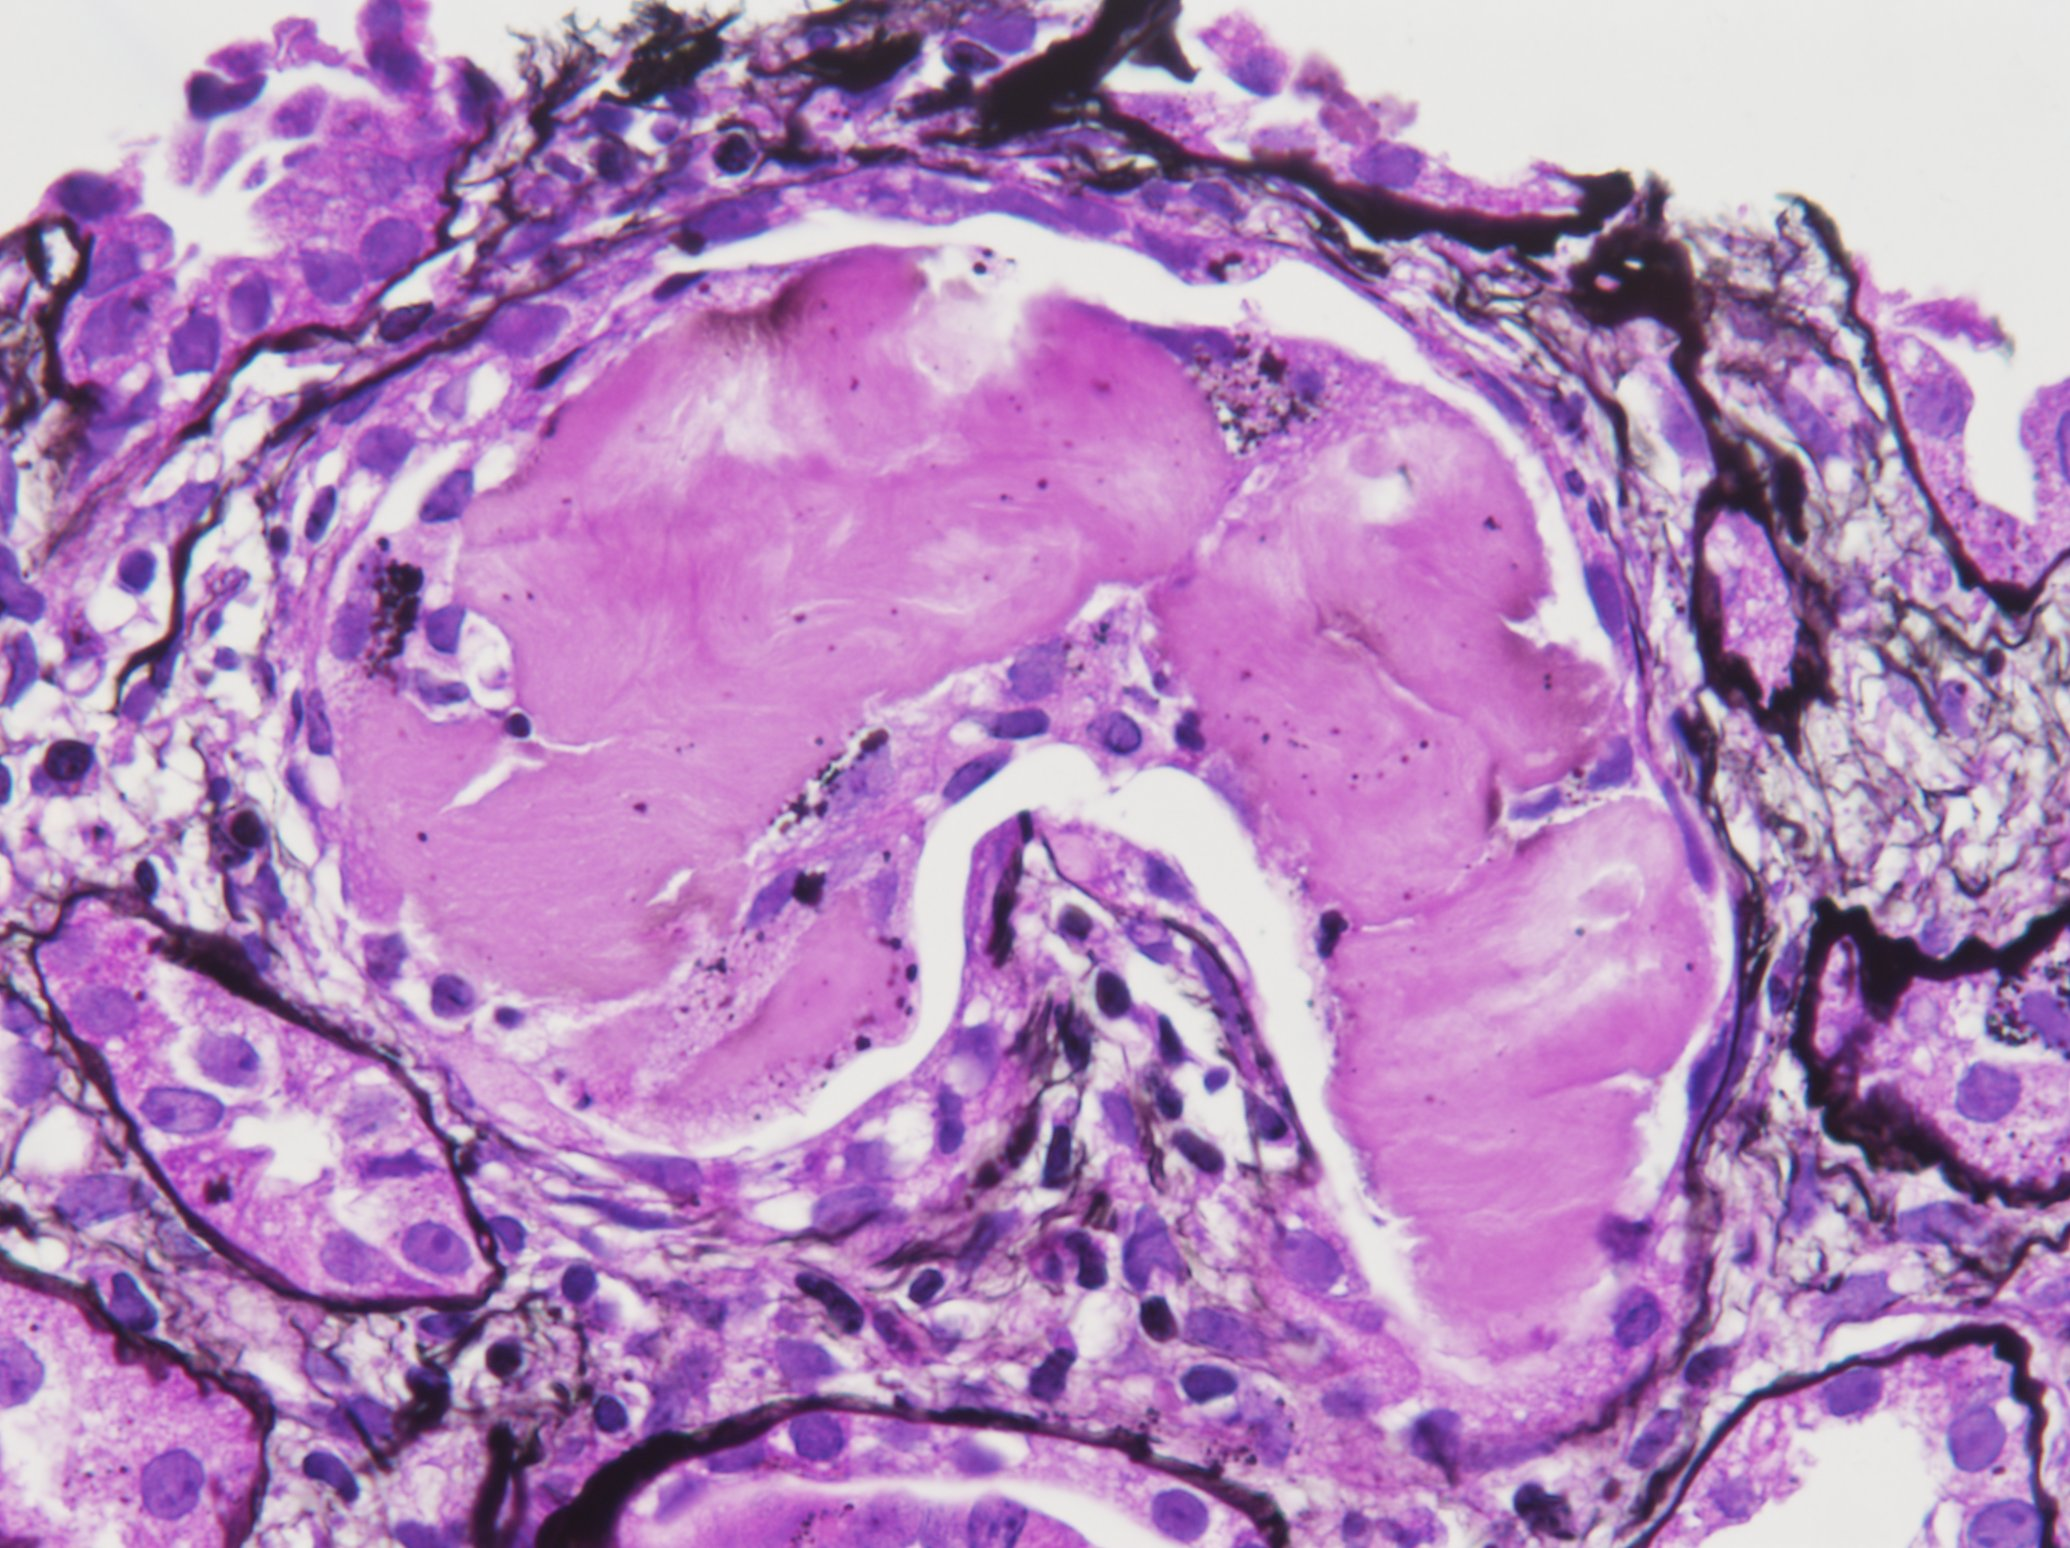 On Histopathology, The Disease Is Characterized By Formation Of Abnormal  Casts In The Distal Tubules Of The Kidney. The Casts Appear Fractured In  Appearance ...